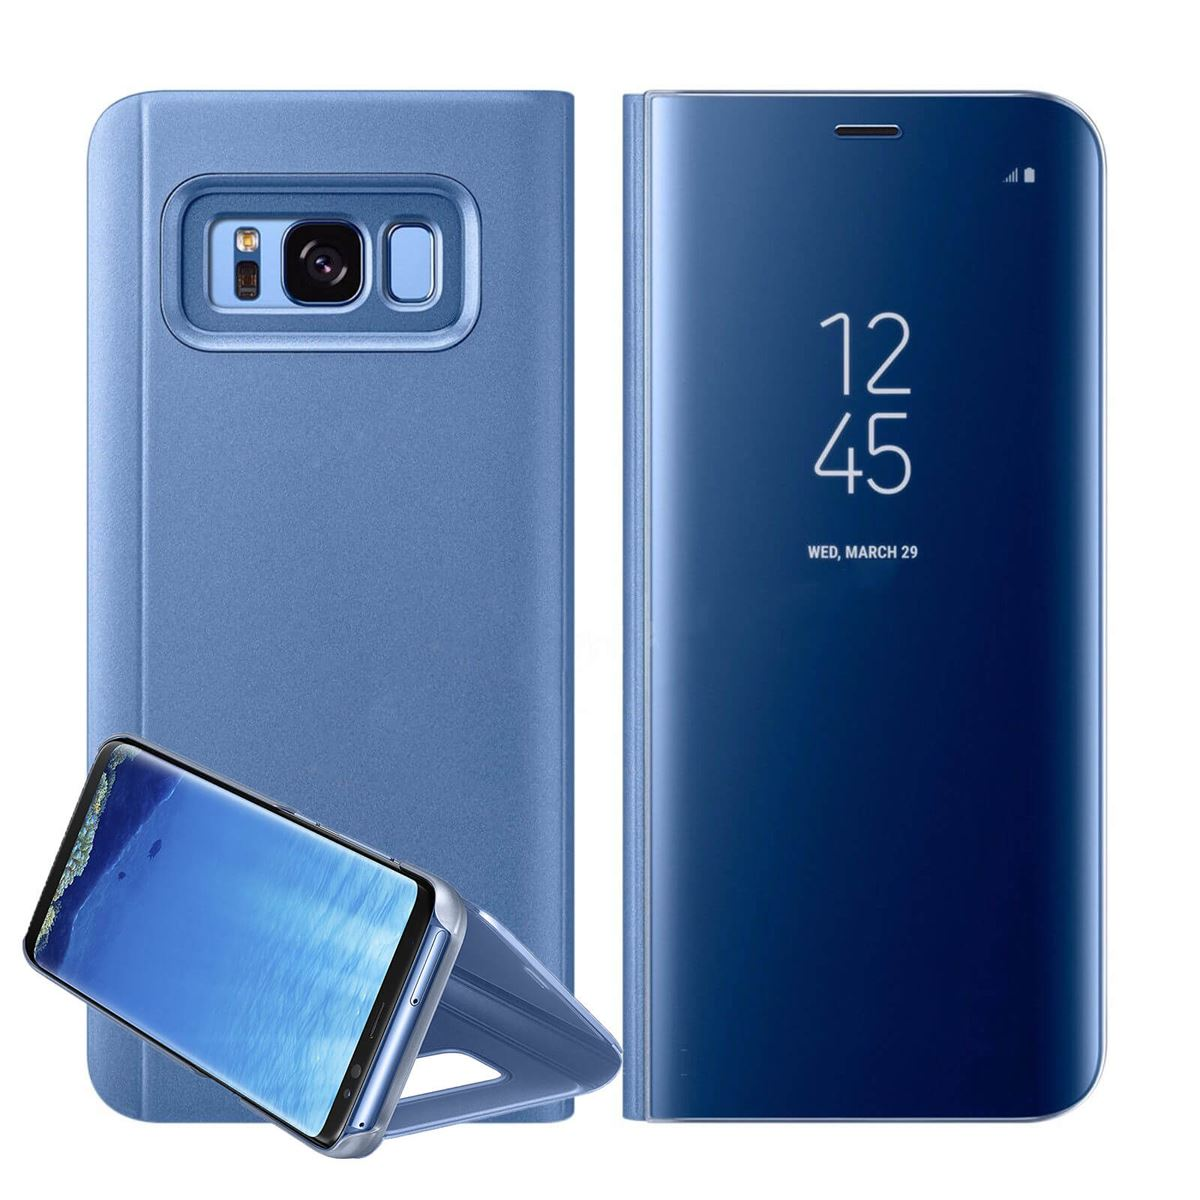 New-Samsung-Galaxy-S10-S9-S8-Smart-View-Mirror-Leather-Flip-Stand-Case-Cover thumbnail 43